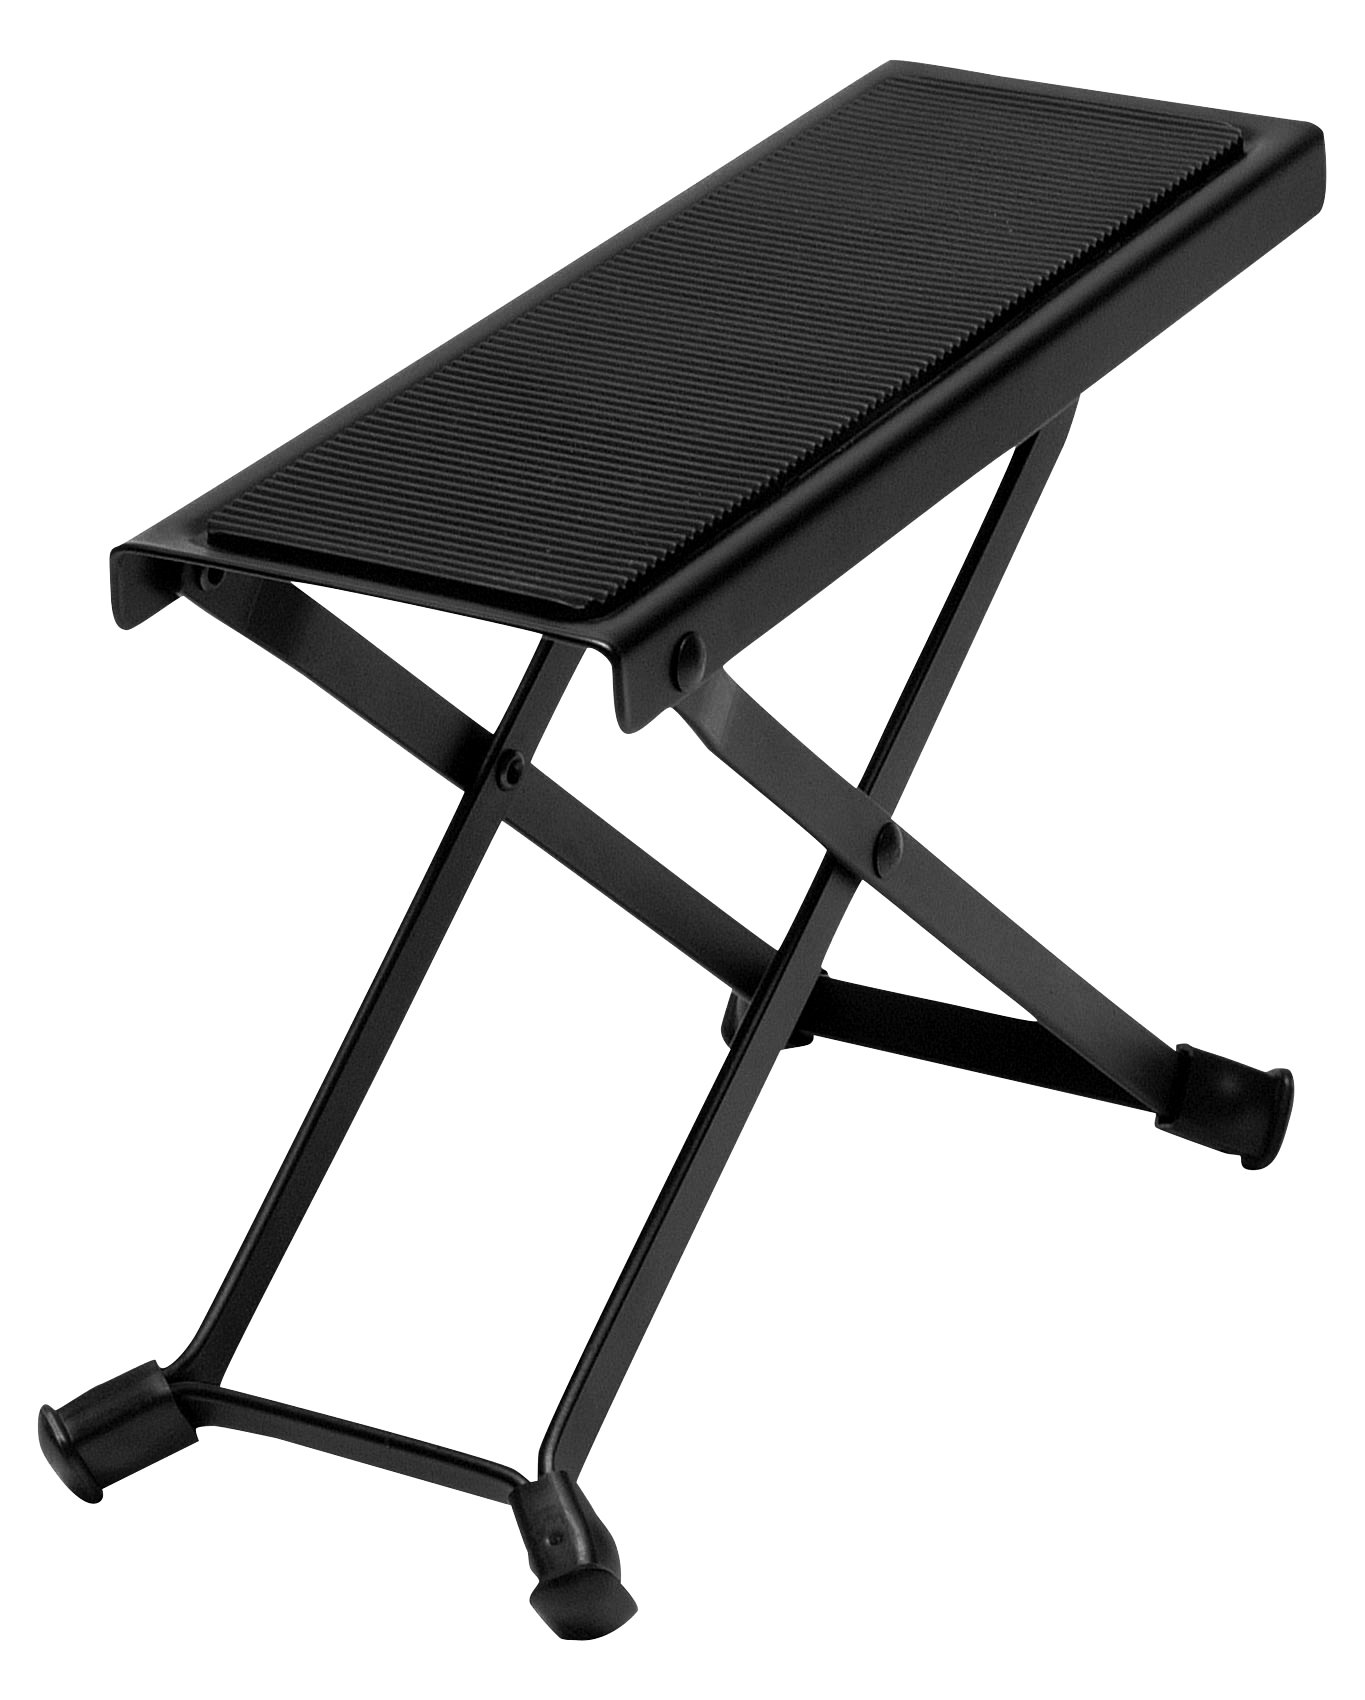 On Stage FS7850B Guitar Foot Rest product image